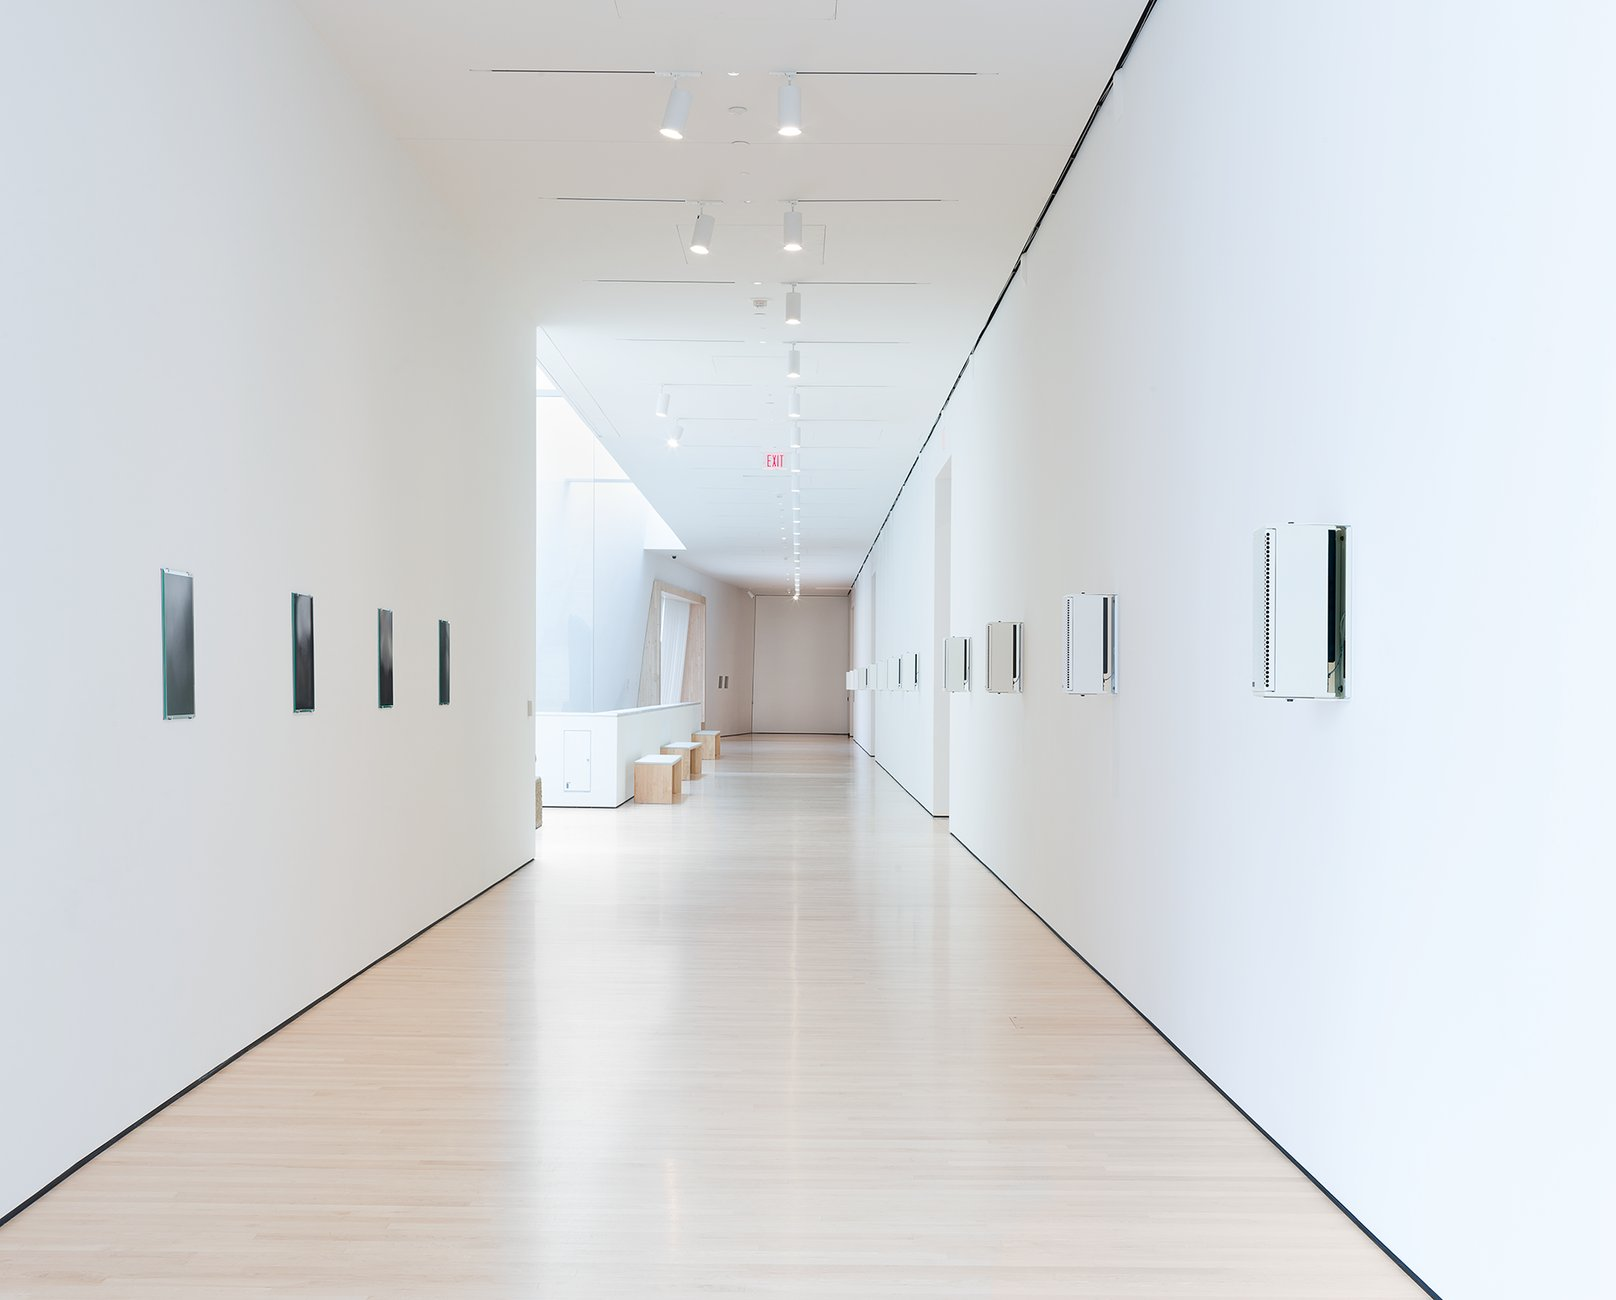 A white gallery hallway with speakers mounted on the wall, Philipsz, Soundtracks